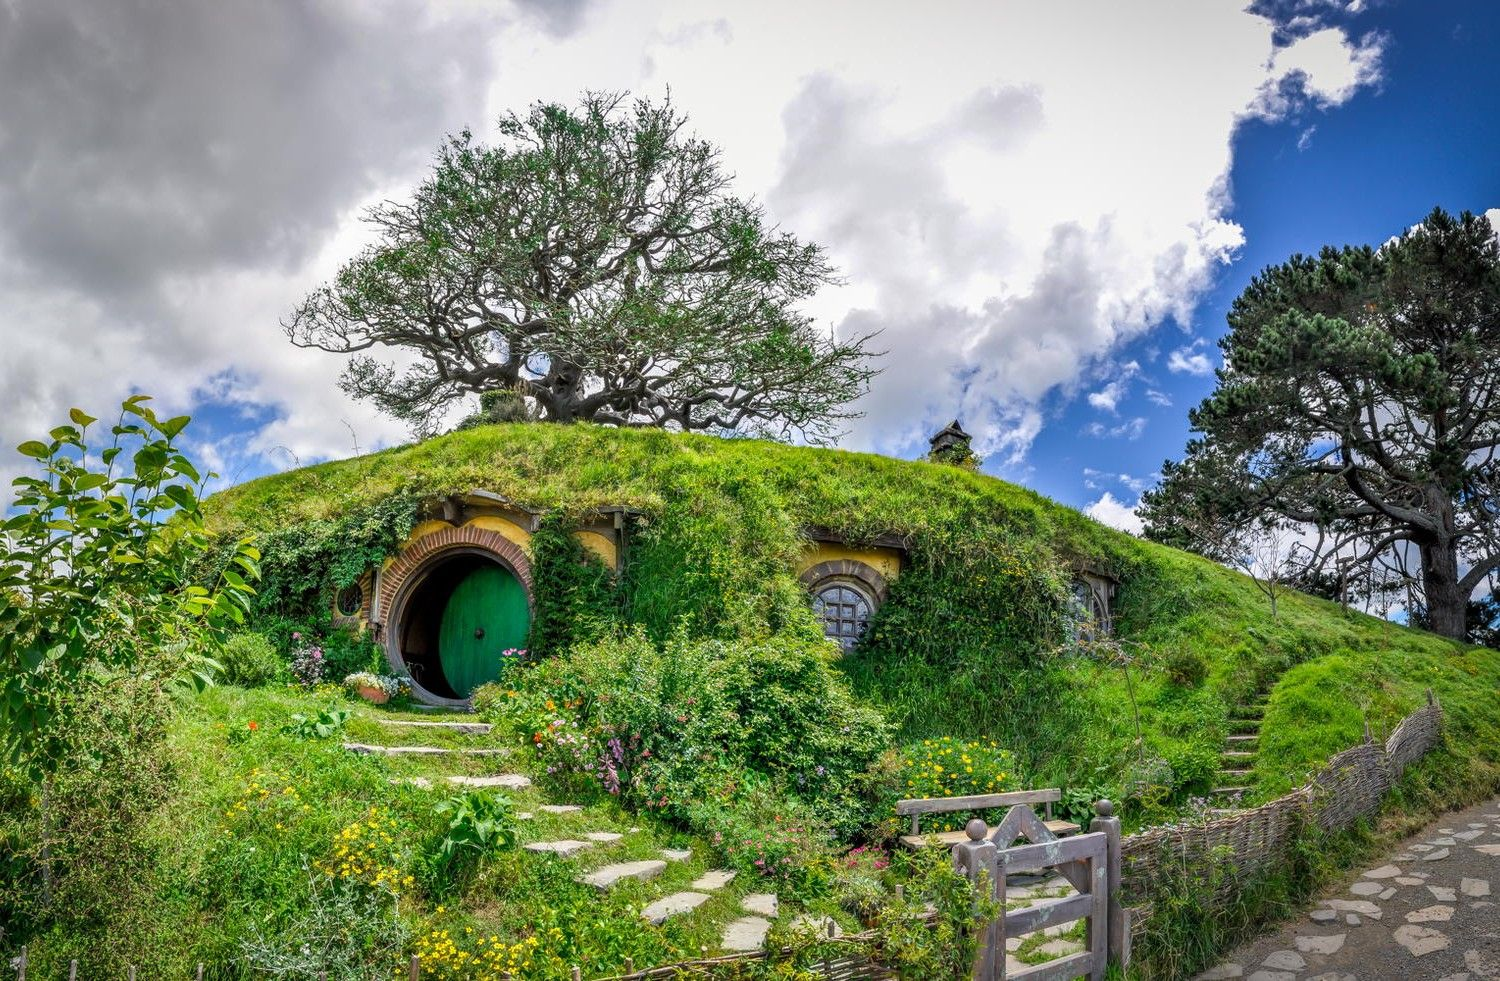 25 Fictional Places You Can Actually Visit In Real LifeLord of the Rings trilogy and The Hobbit 1. Bilbo Baggins' home in Hobbiton can be found in Matamata, New Zealand.